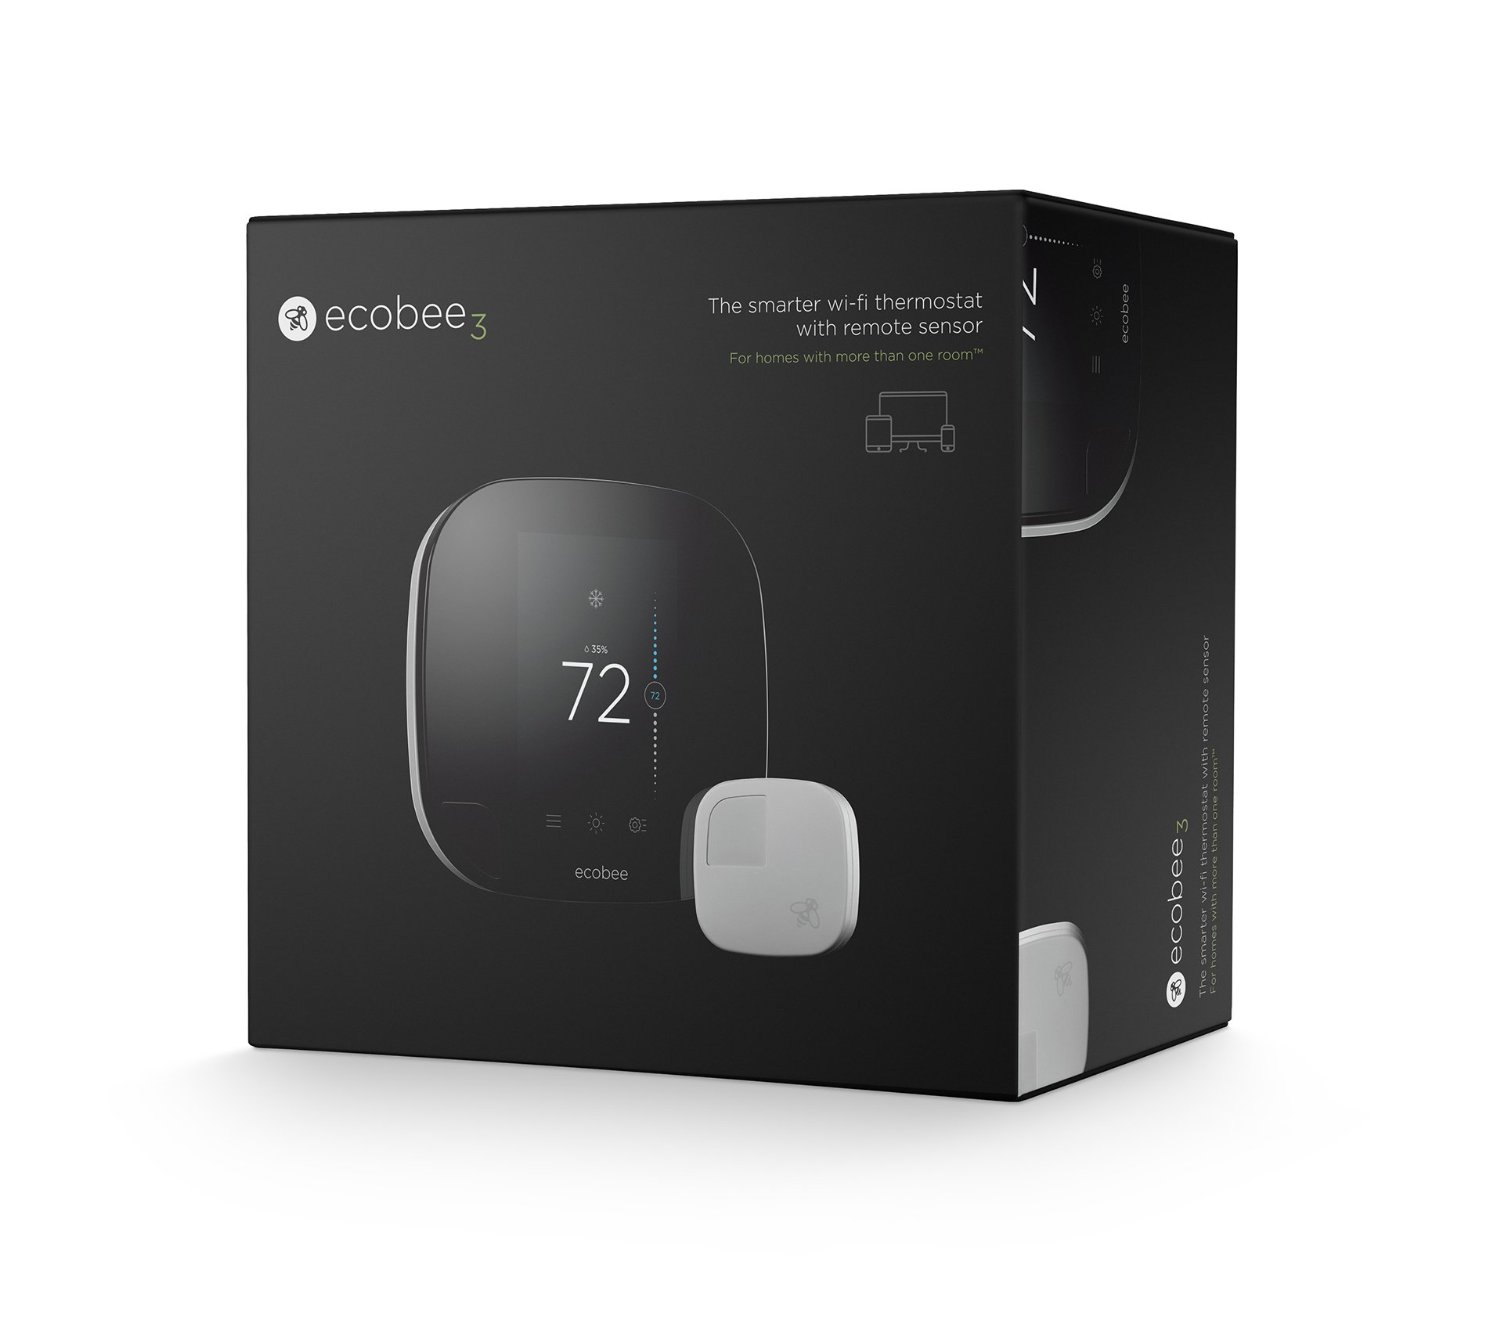 Ecobee Sensor Ecobee 3 Unboxing Best Digital Thermostat Reviews And Buying Guide